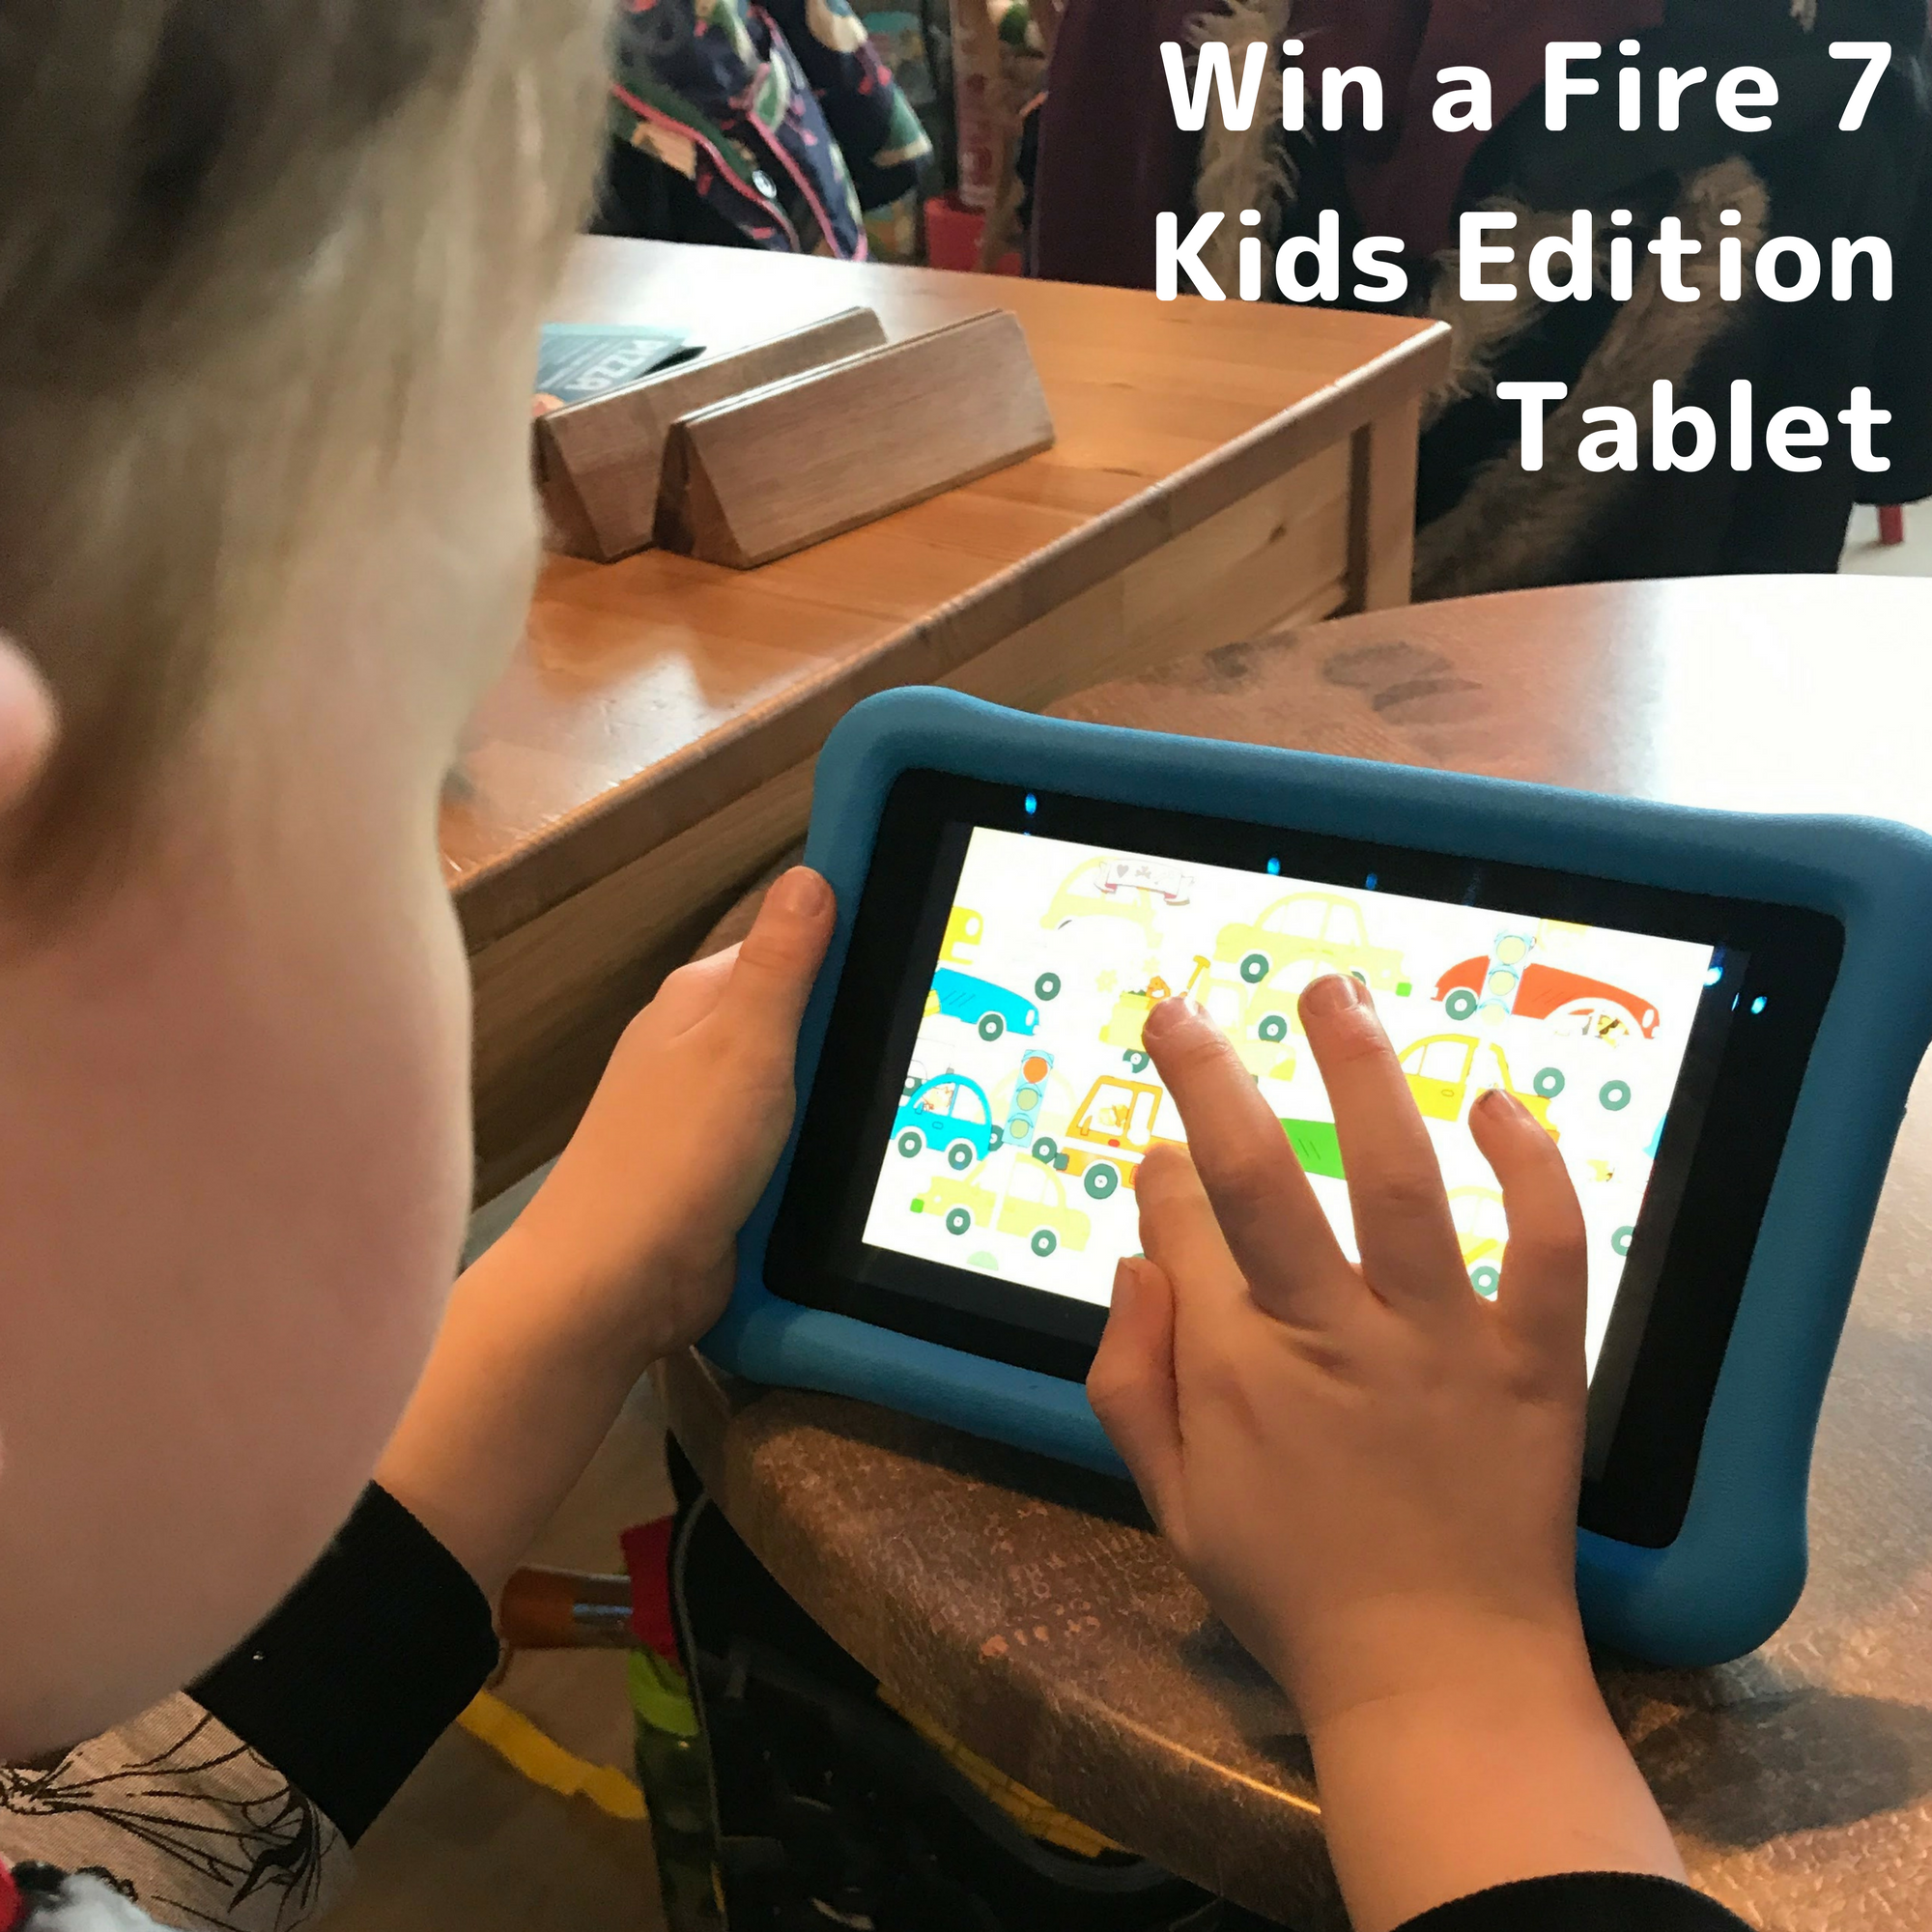 Win a Fire 7 Kids Edition Tablet (1)